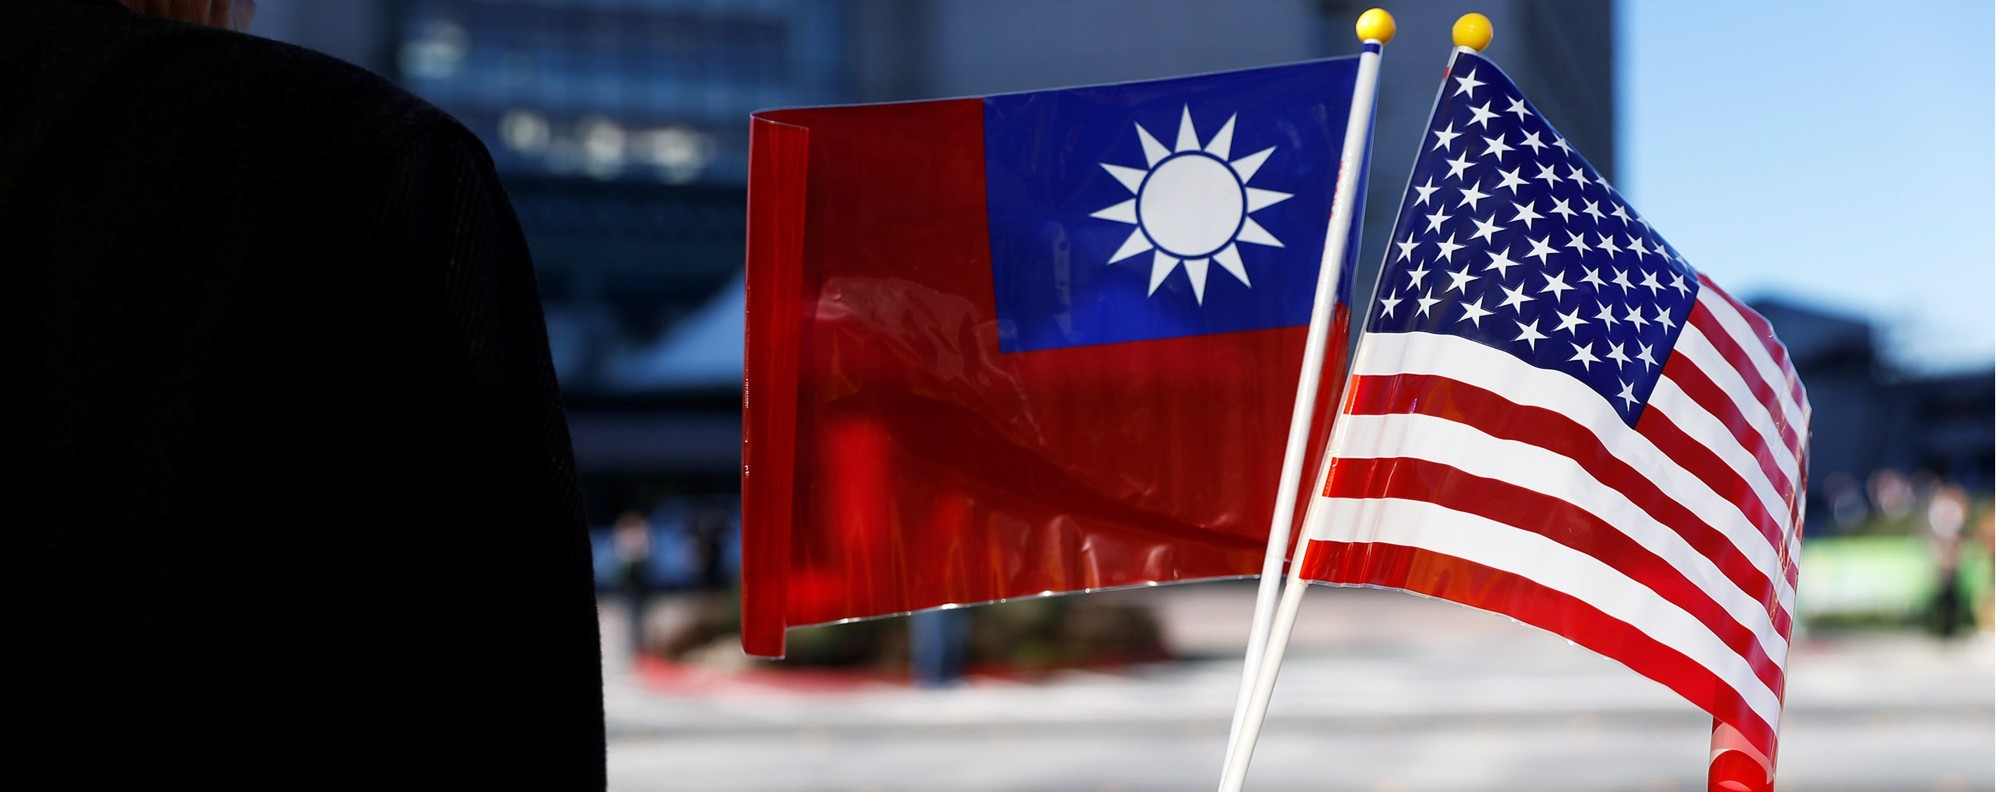 The Taiwanese and American flags. Photo: Reuters